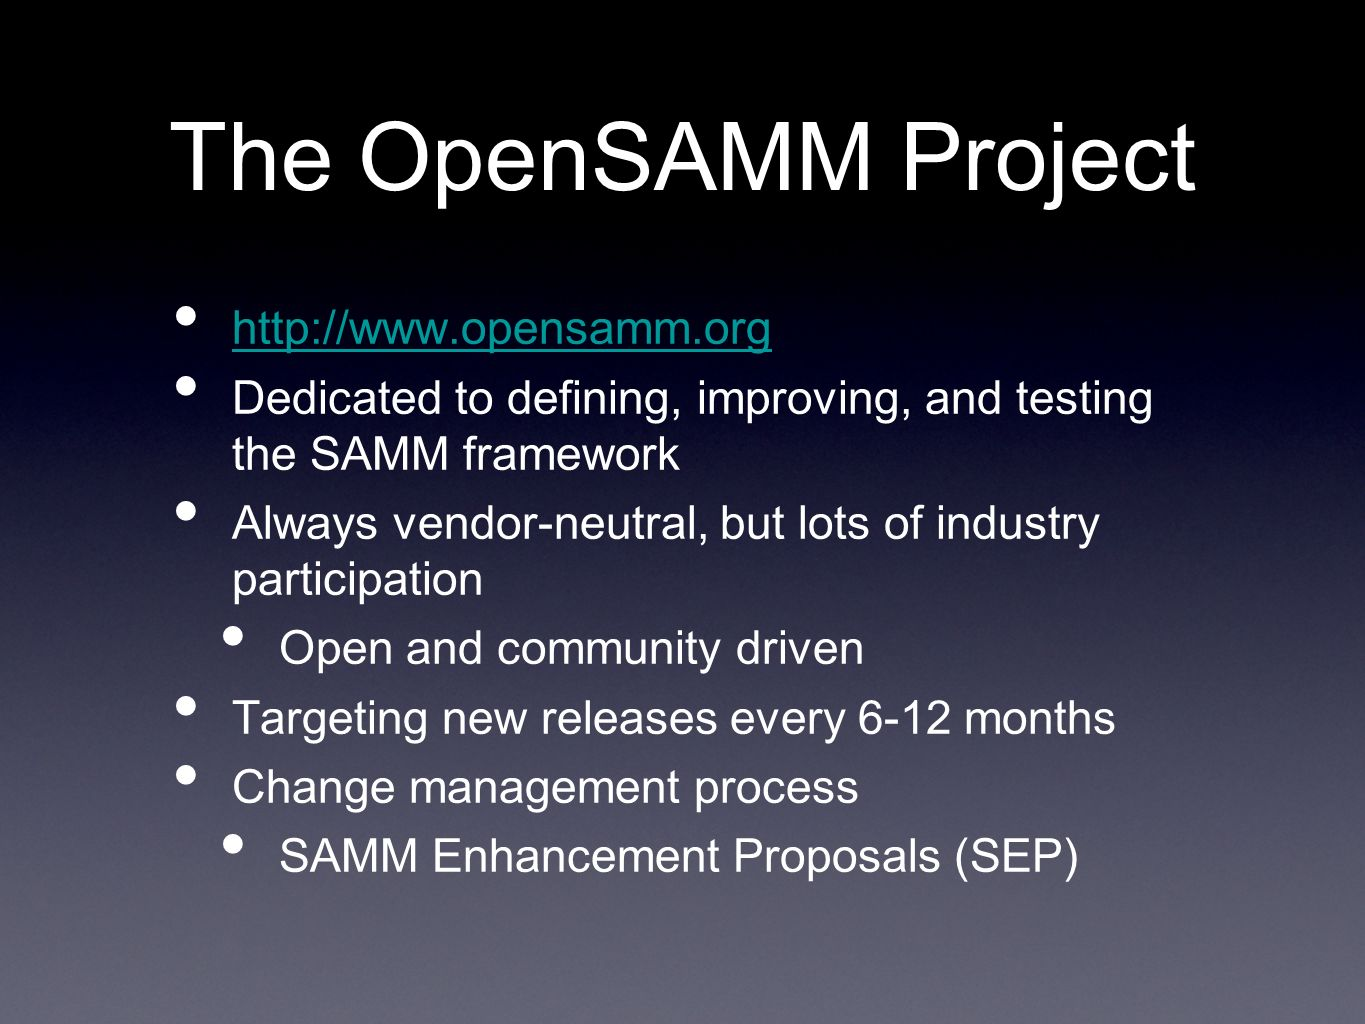 The OpenSAMM Project http://www.opensamm.org